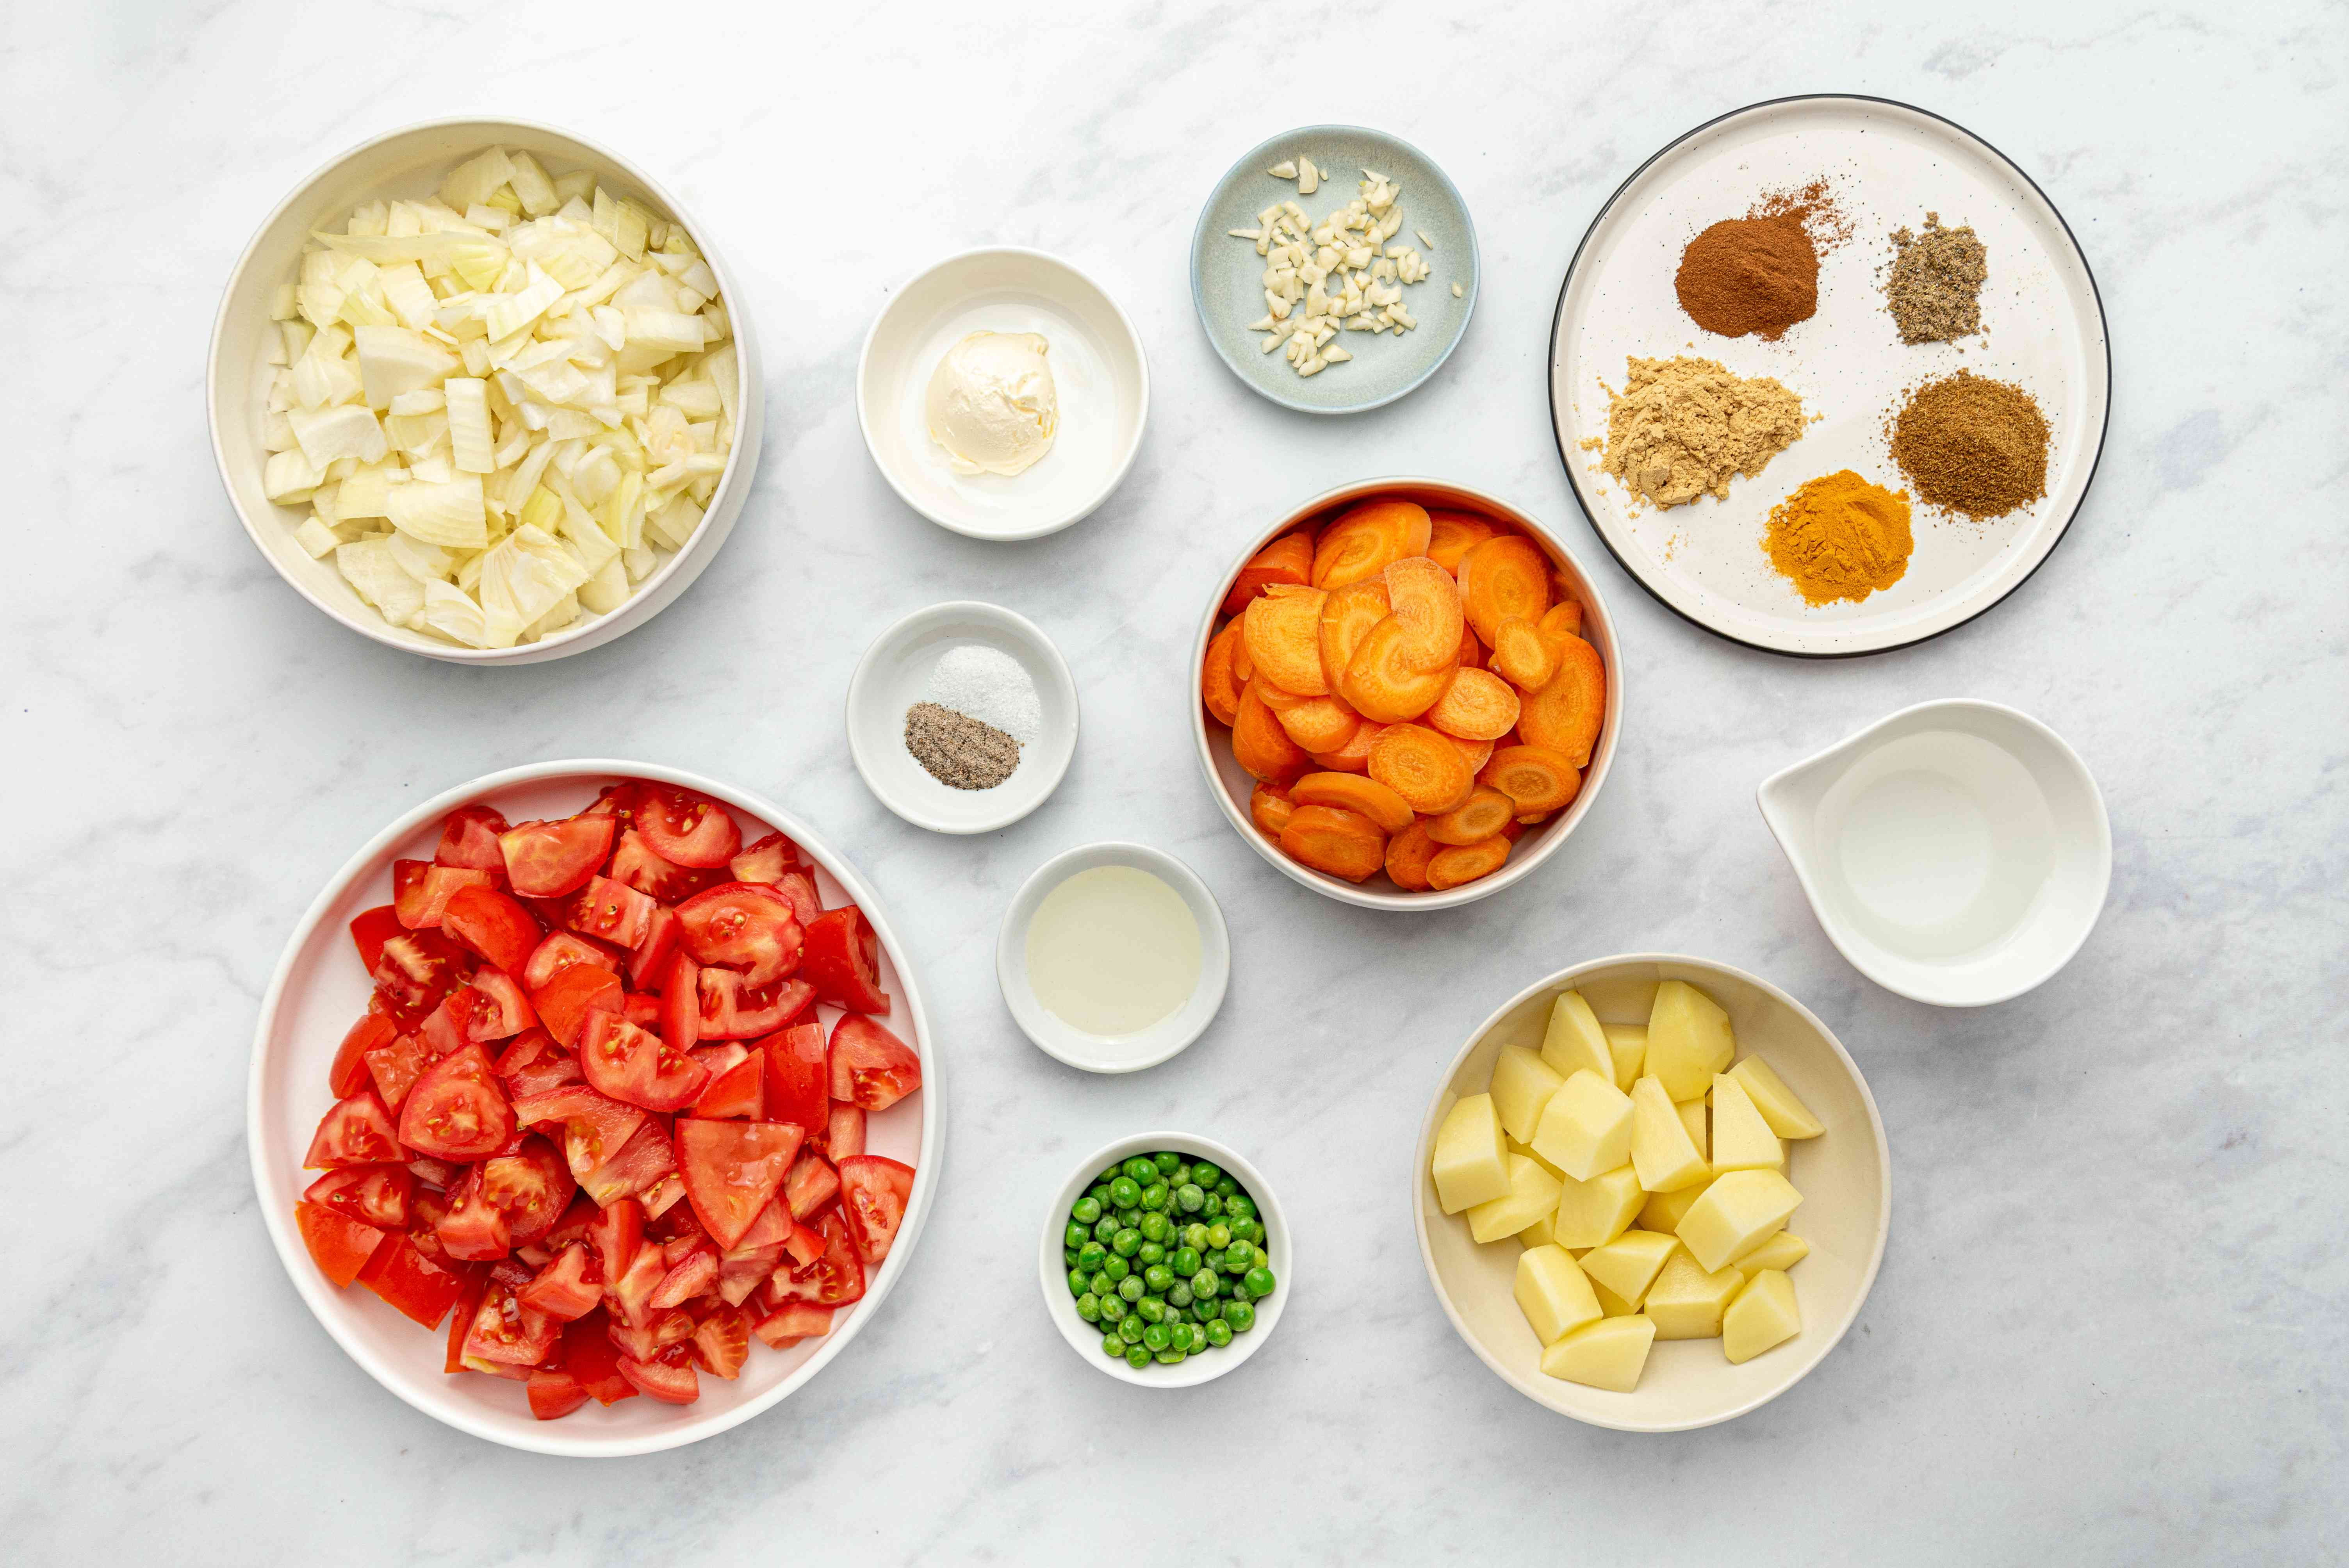 Ingredients for curried Indian vegetables